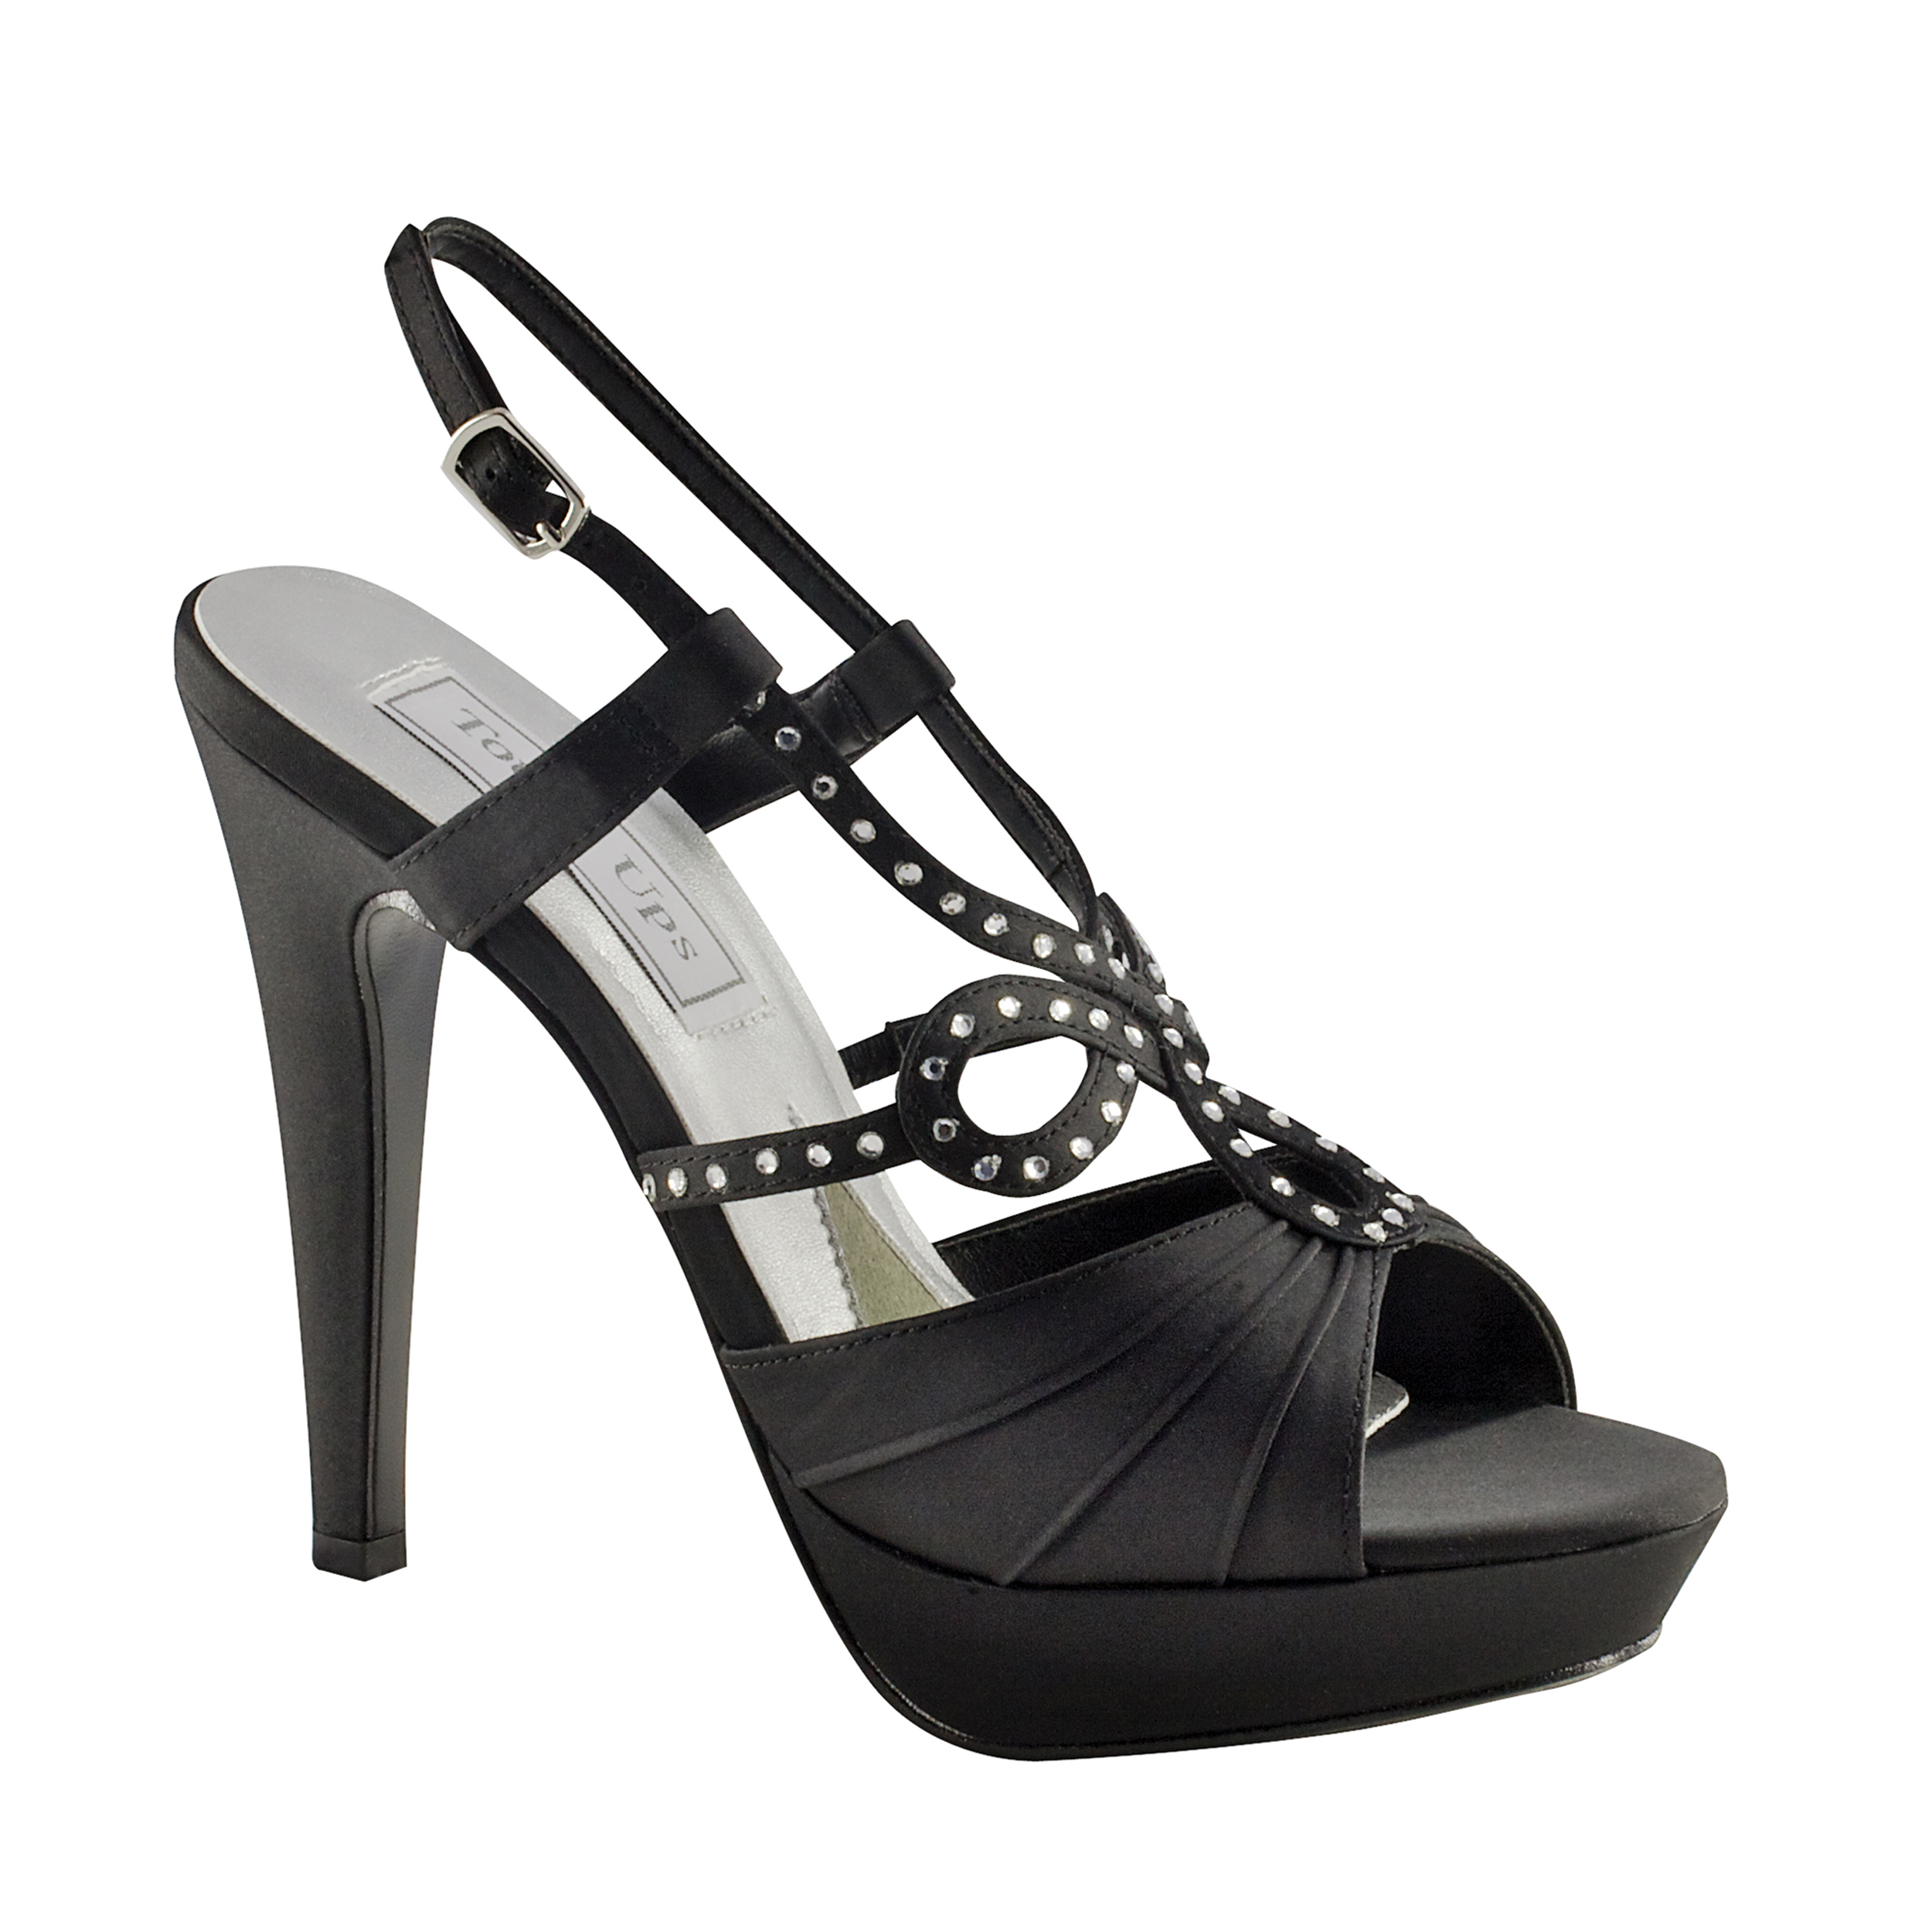 Touch Ups Womens Lonnie Leather Platform Sandal,Black Satin,9 M US